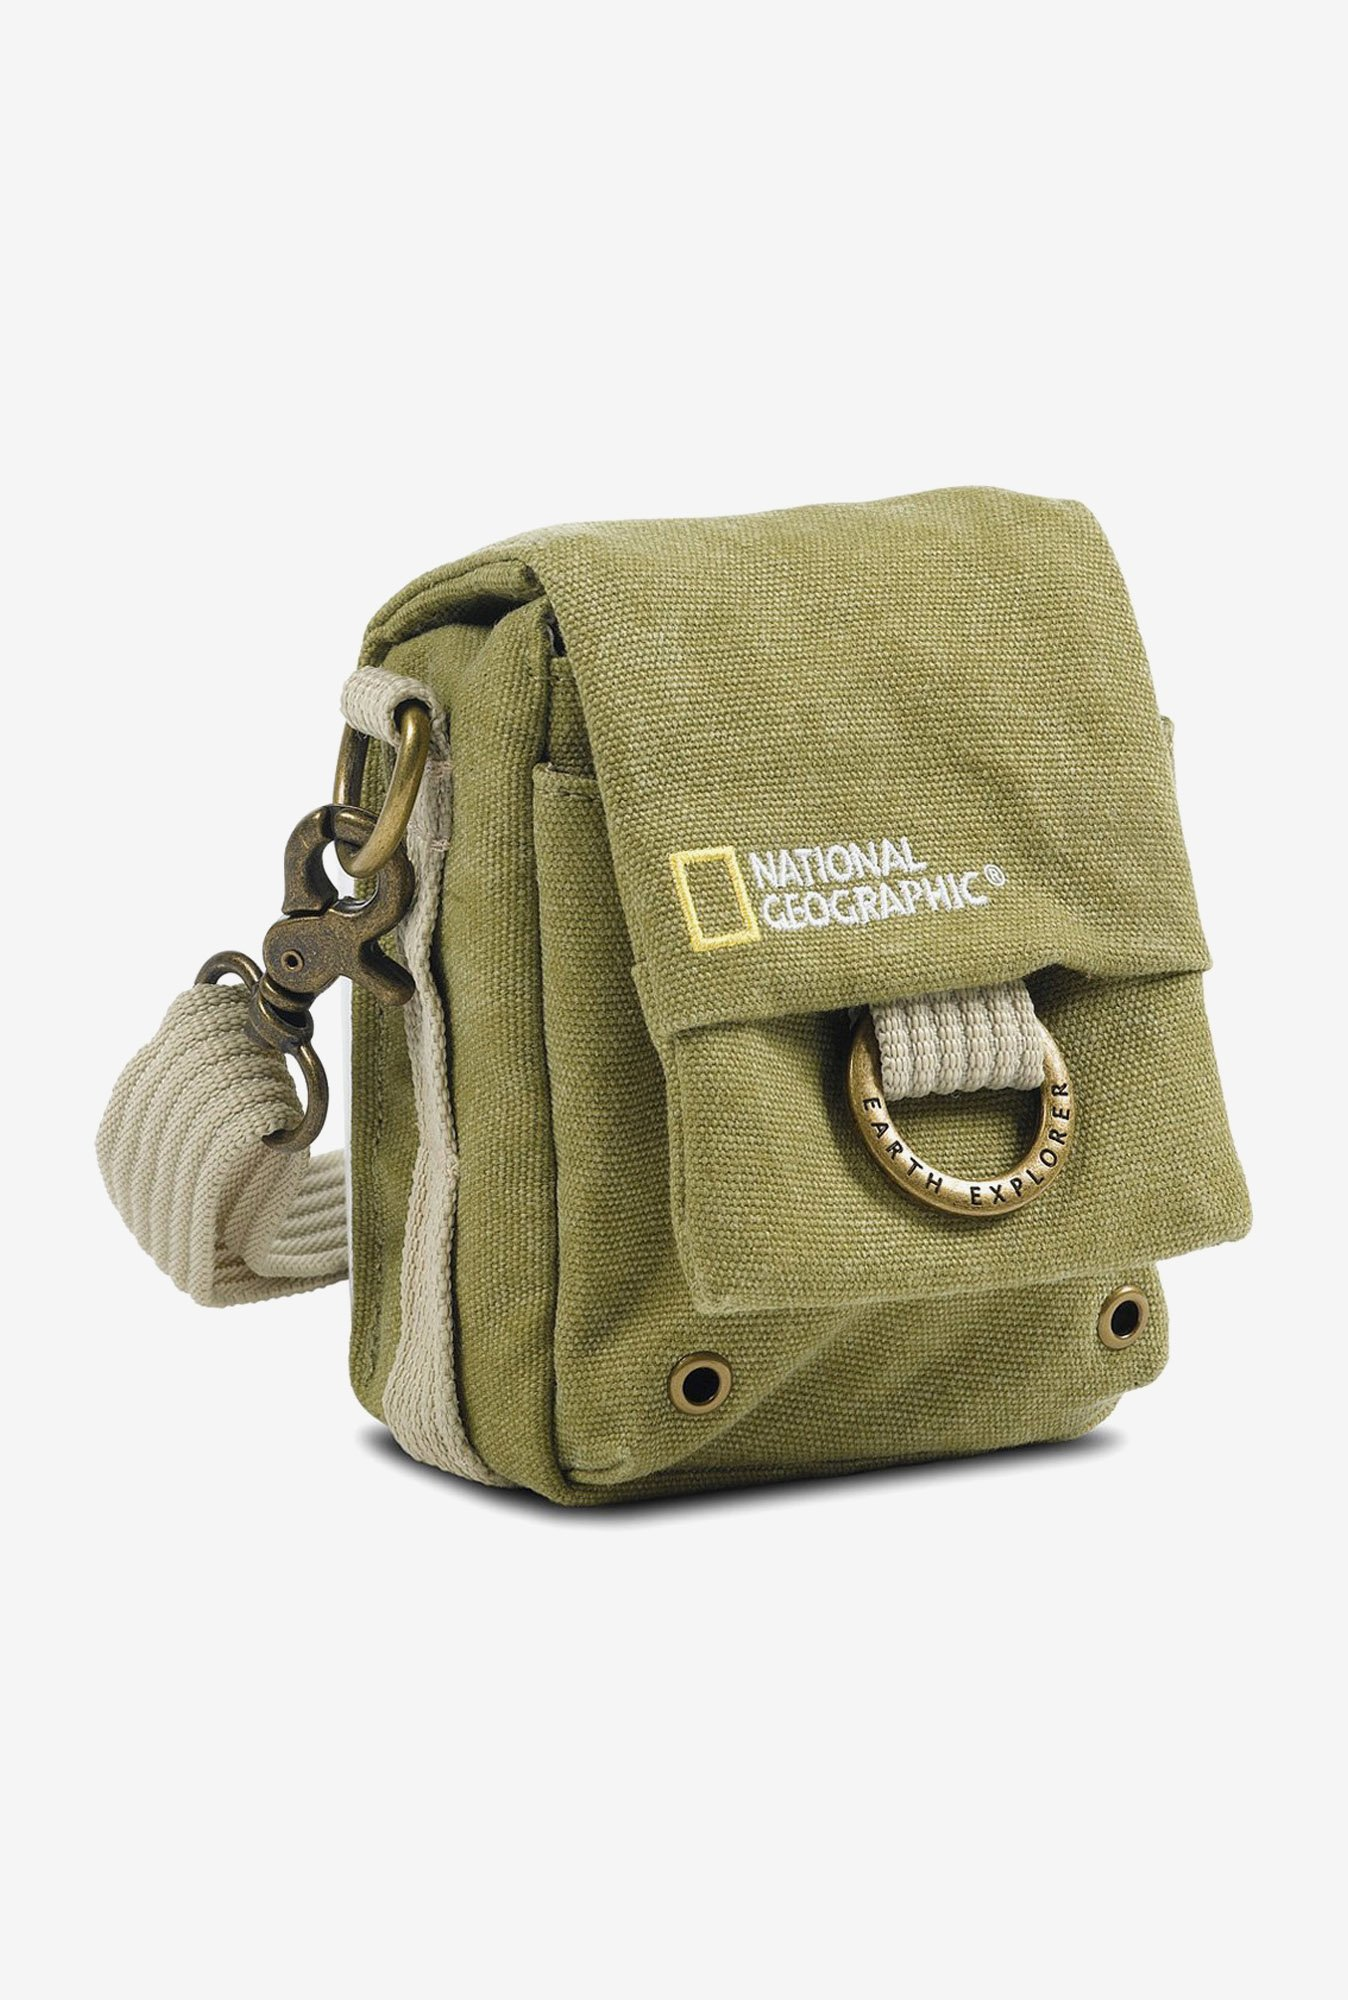 National Geographic NG1153 Camera Bag Khaki